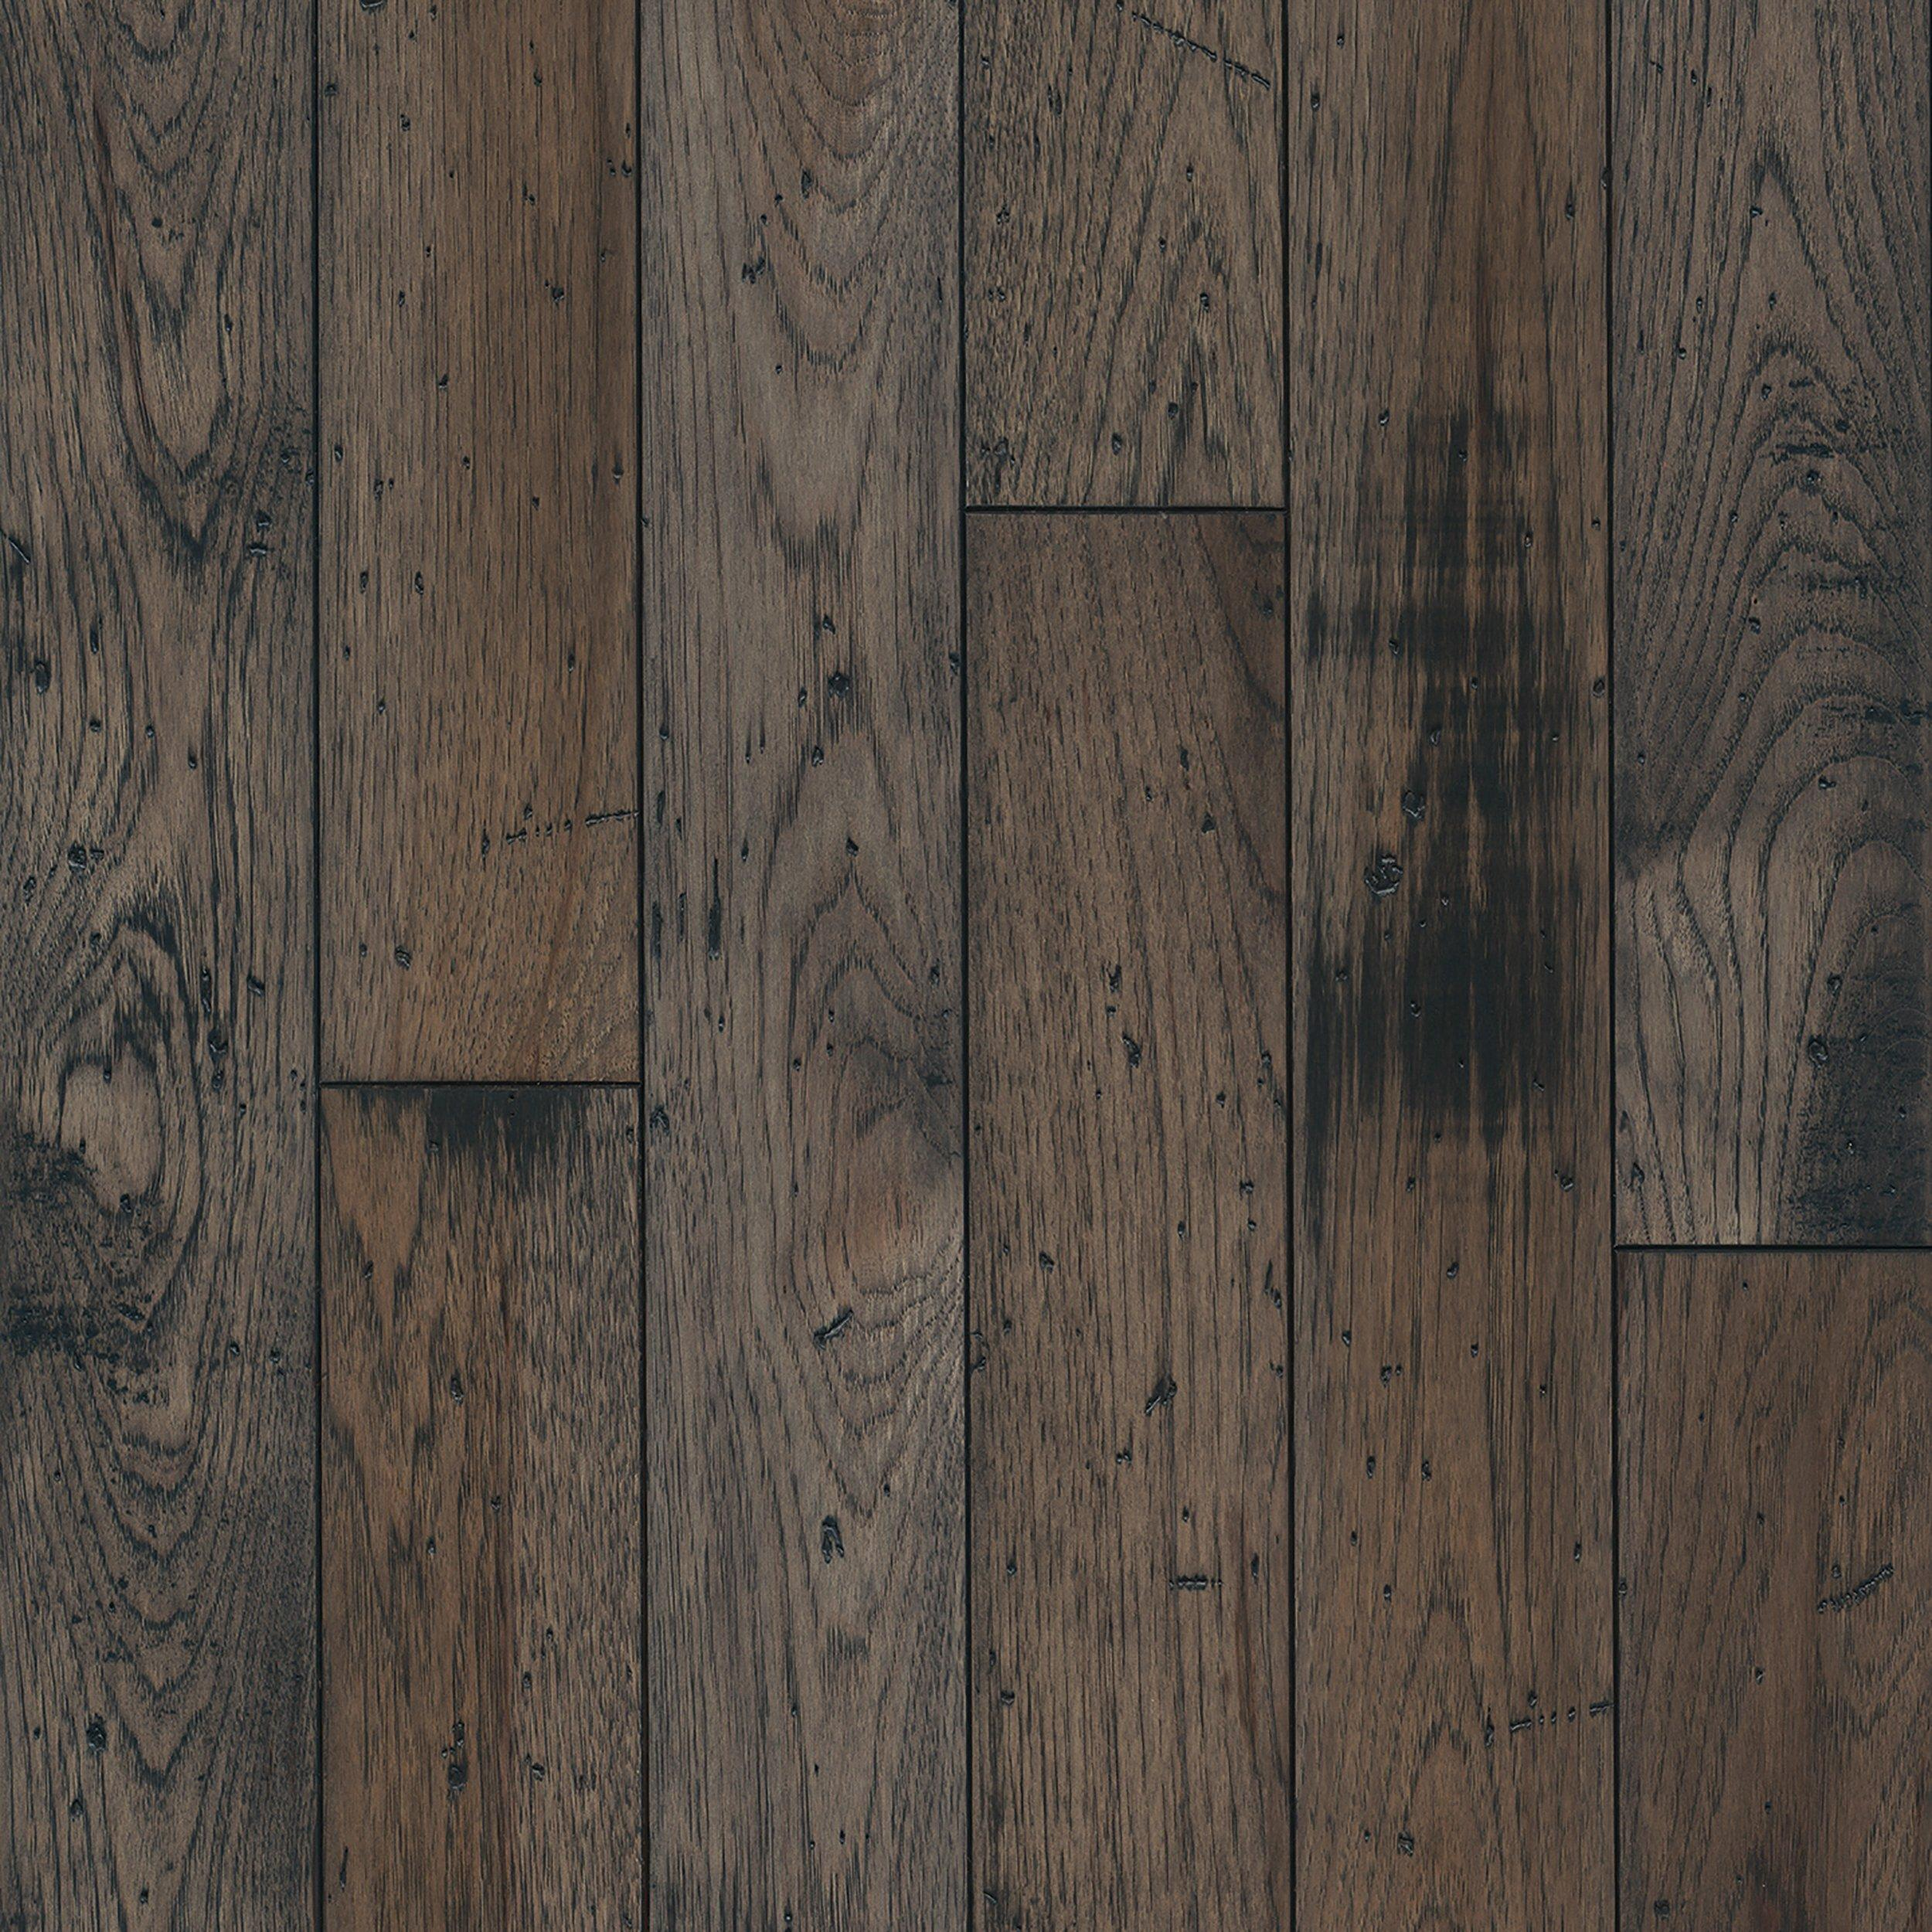 Greyhound Hickory Distressed Solid Hardwood 3 4in X 4in